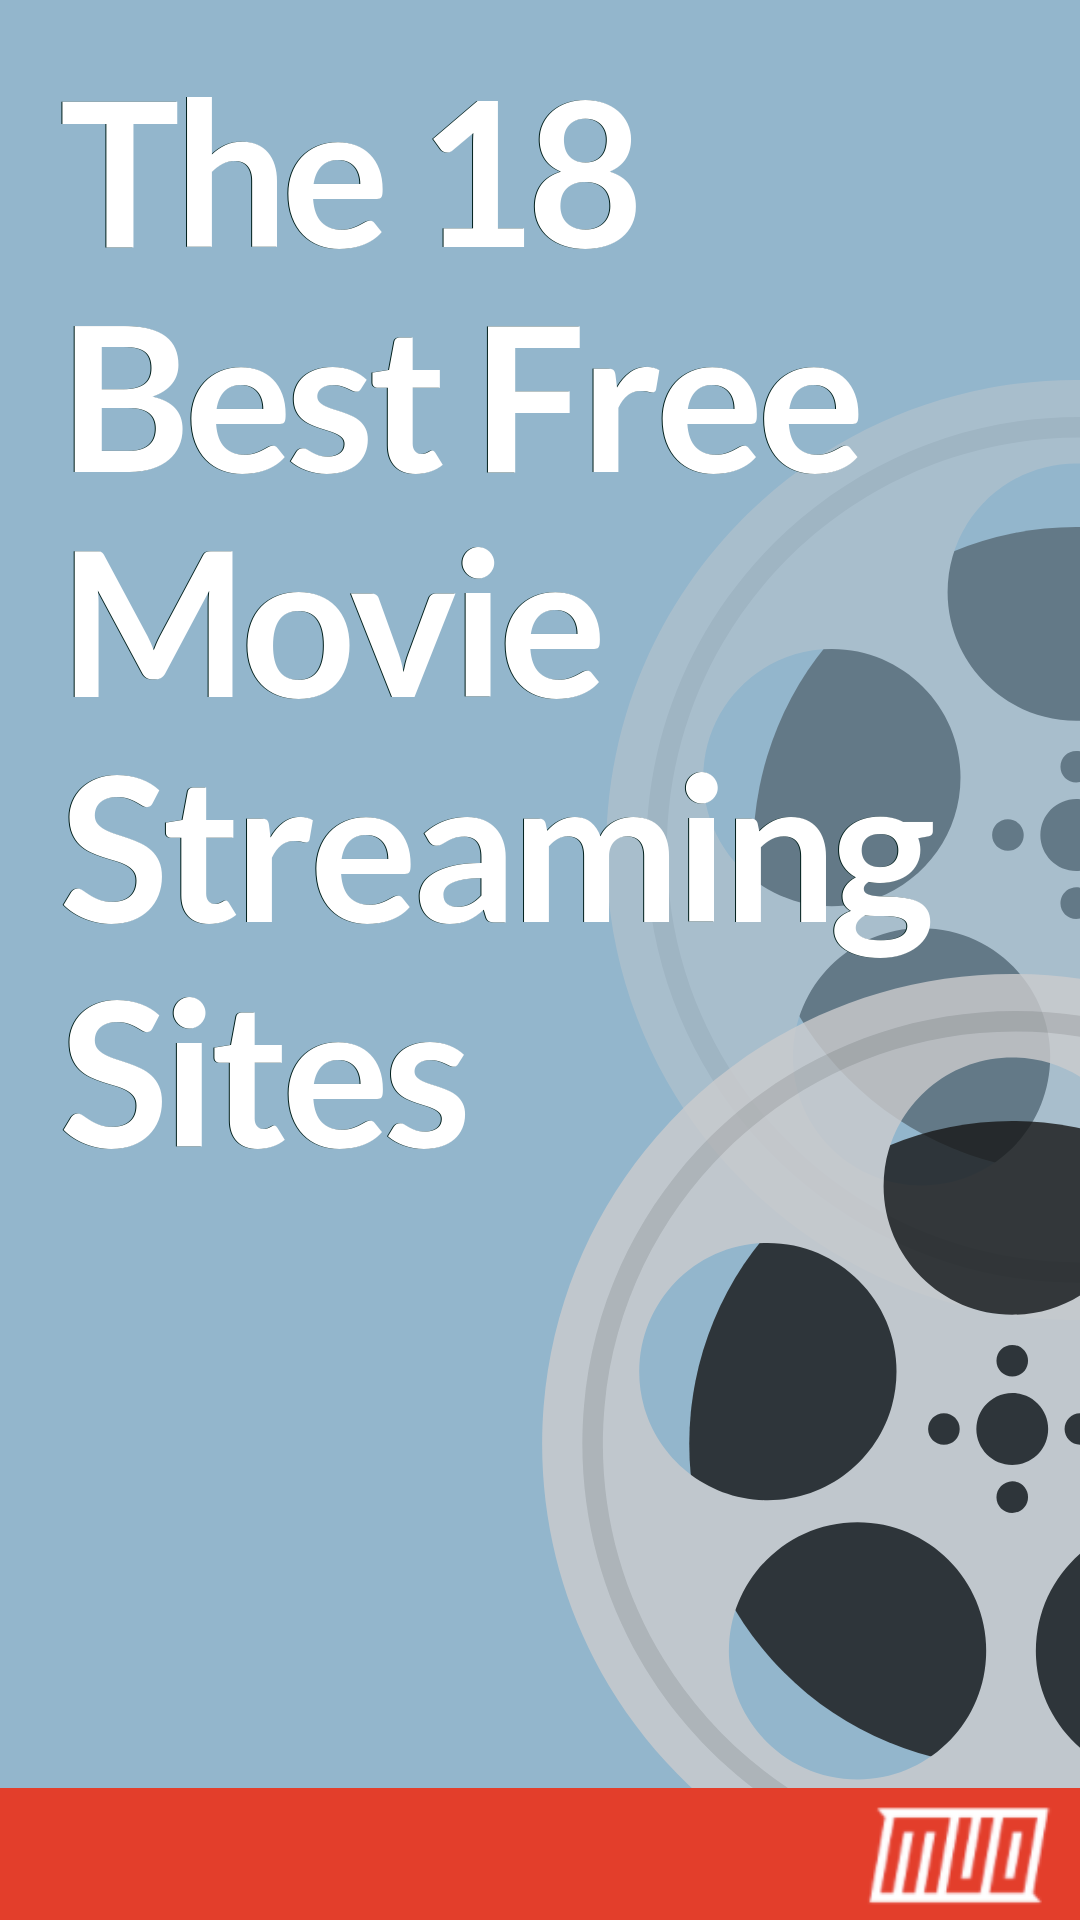 The Best Free Movie Streaming Sites